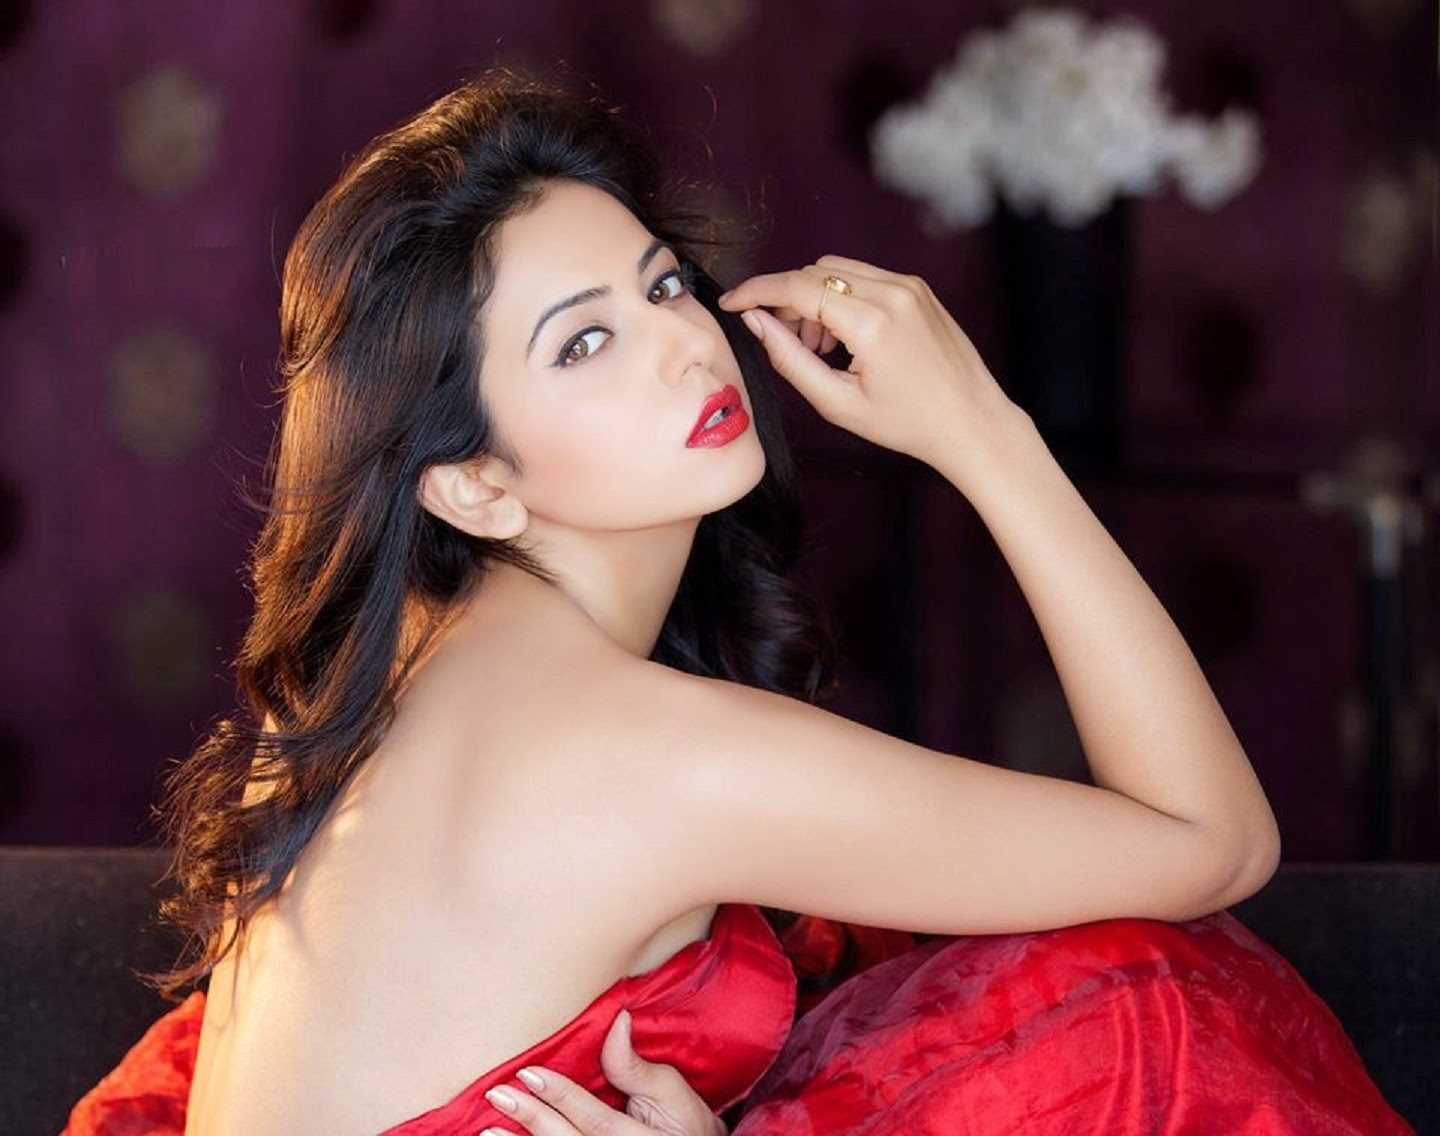 Every actress wallpapers rakul preet singh beautiful indian film rakul preet singh beautiful indian film actress and model very hot and spicy latest photos wallpapers free download voltagebd Images